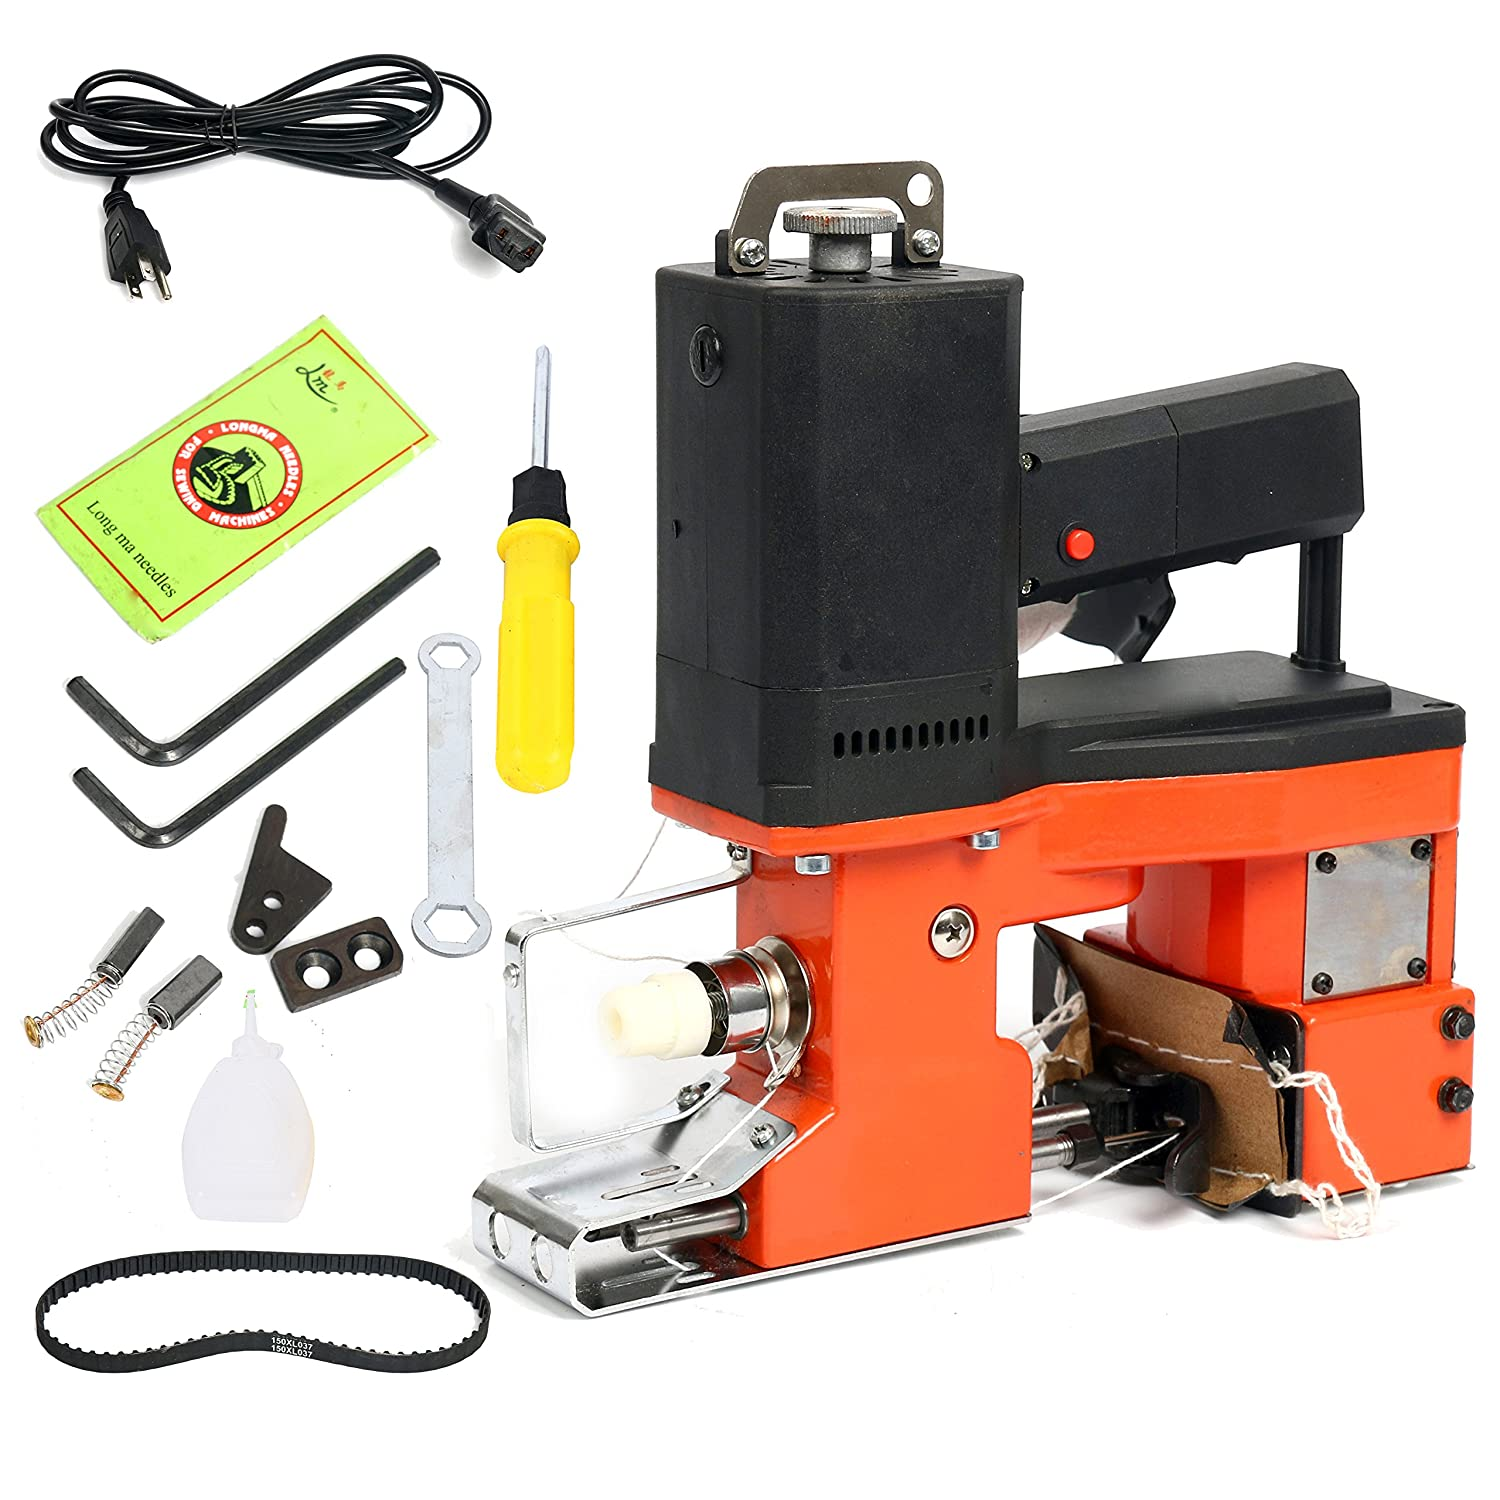 Yaetek 110V Industrial Portable Electric Bag Stitching Closer Seal Sewing Machine Closing Sealing Stitcher Yaemart Corportation TEK-NY-8133